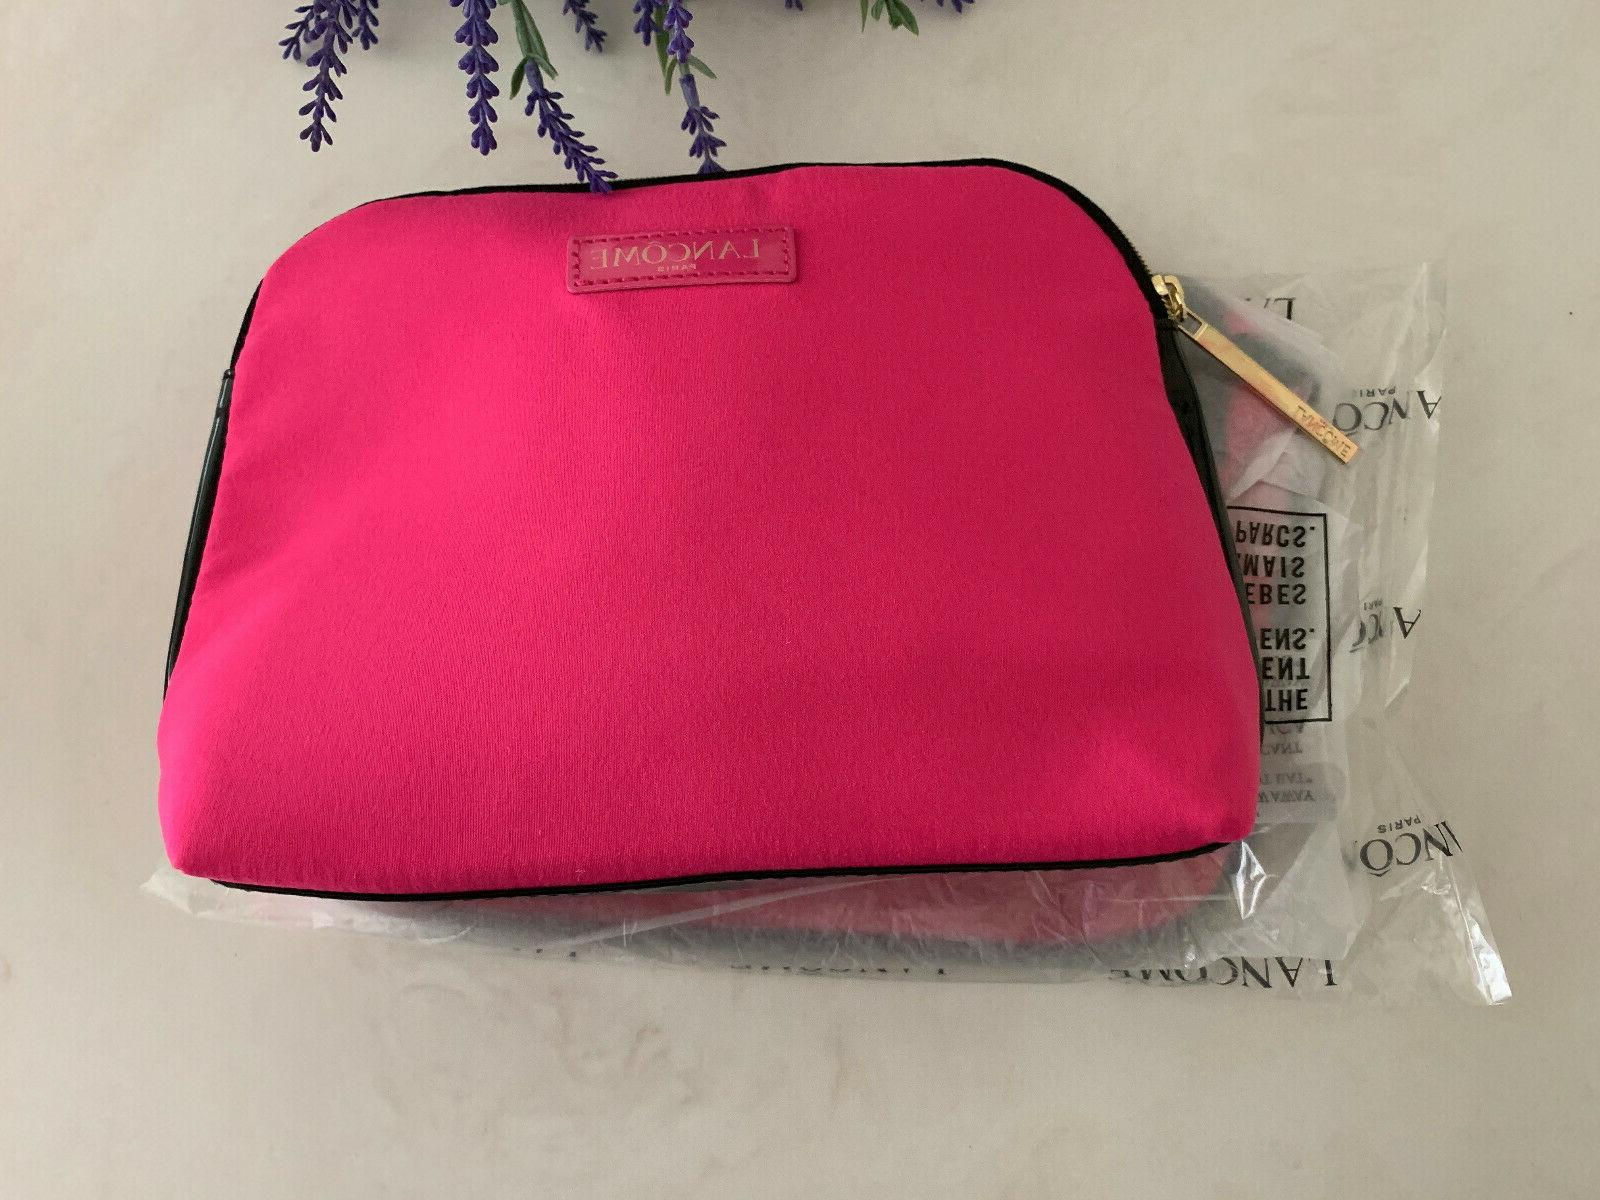 2 Cosmetic Bag PINK Approx 8 x 2.5